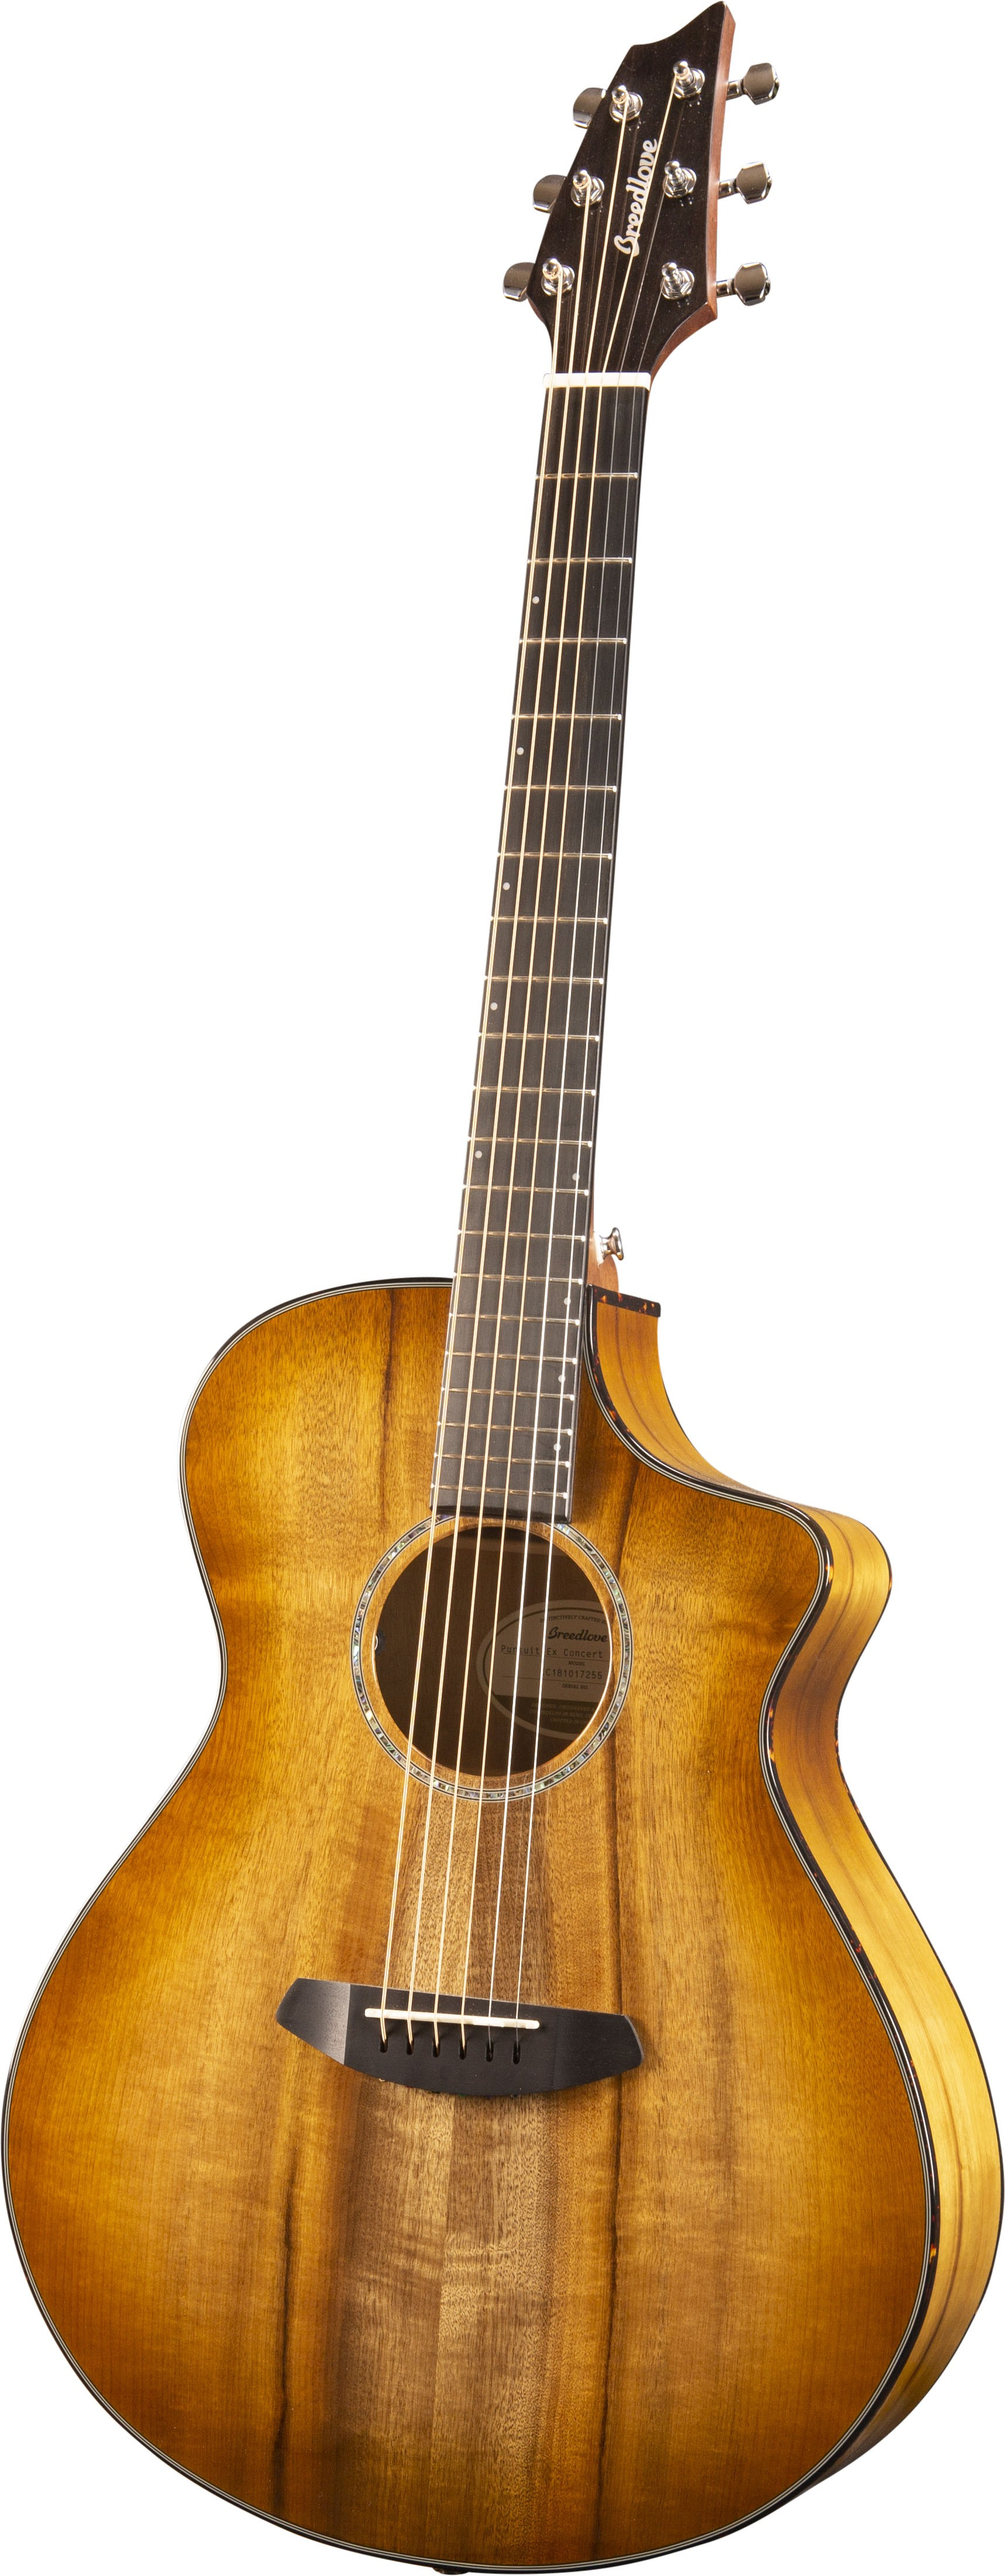 Breedlove Pursuit Exotic Concert Prairie Burst CE